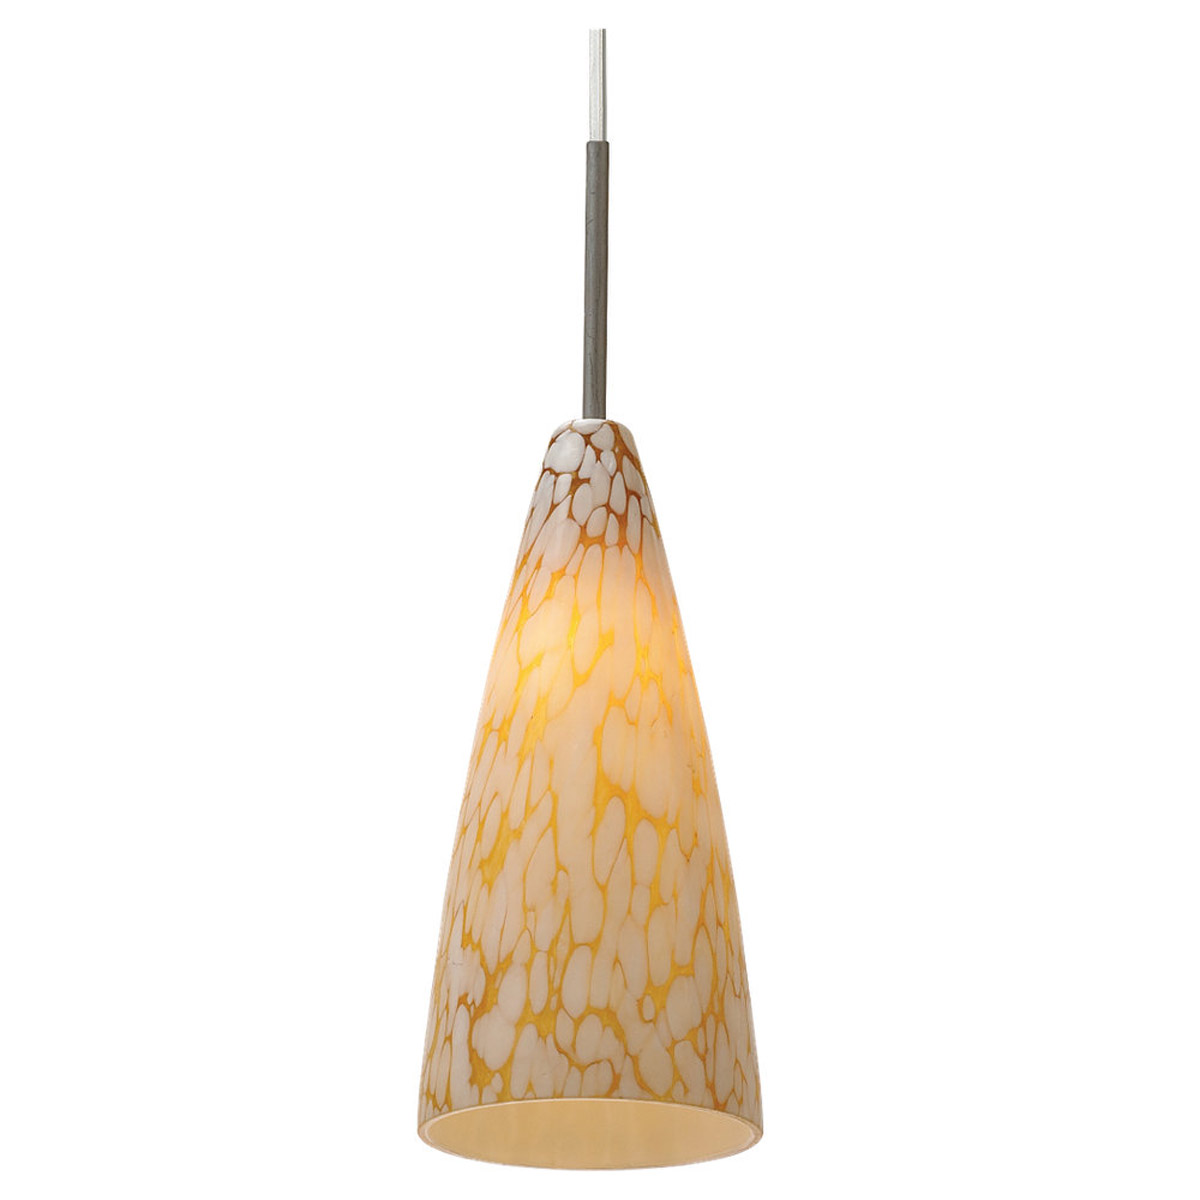 Sea Gull Lighting Ambiance Transitions 1 Light Pendant in Antique Brushed Nickel 94766-6029 photo